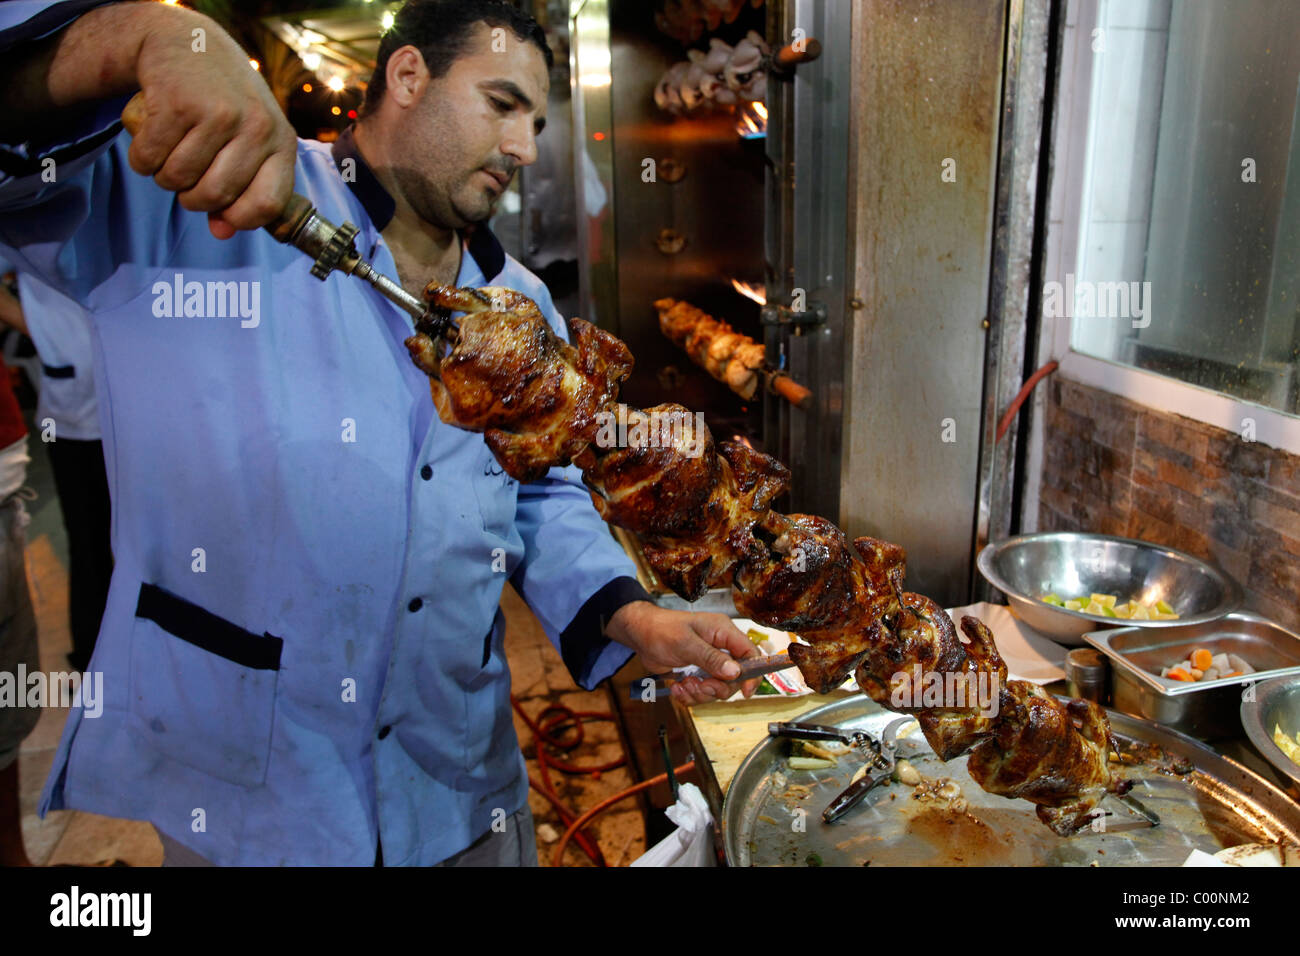 Grilled chicken restaurant, Aqaba, Jordan. - Stock Image